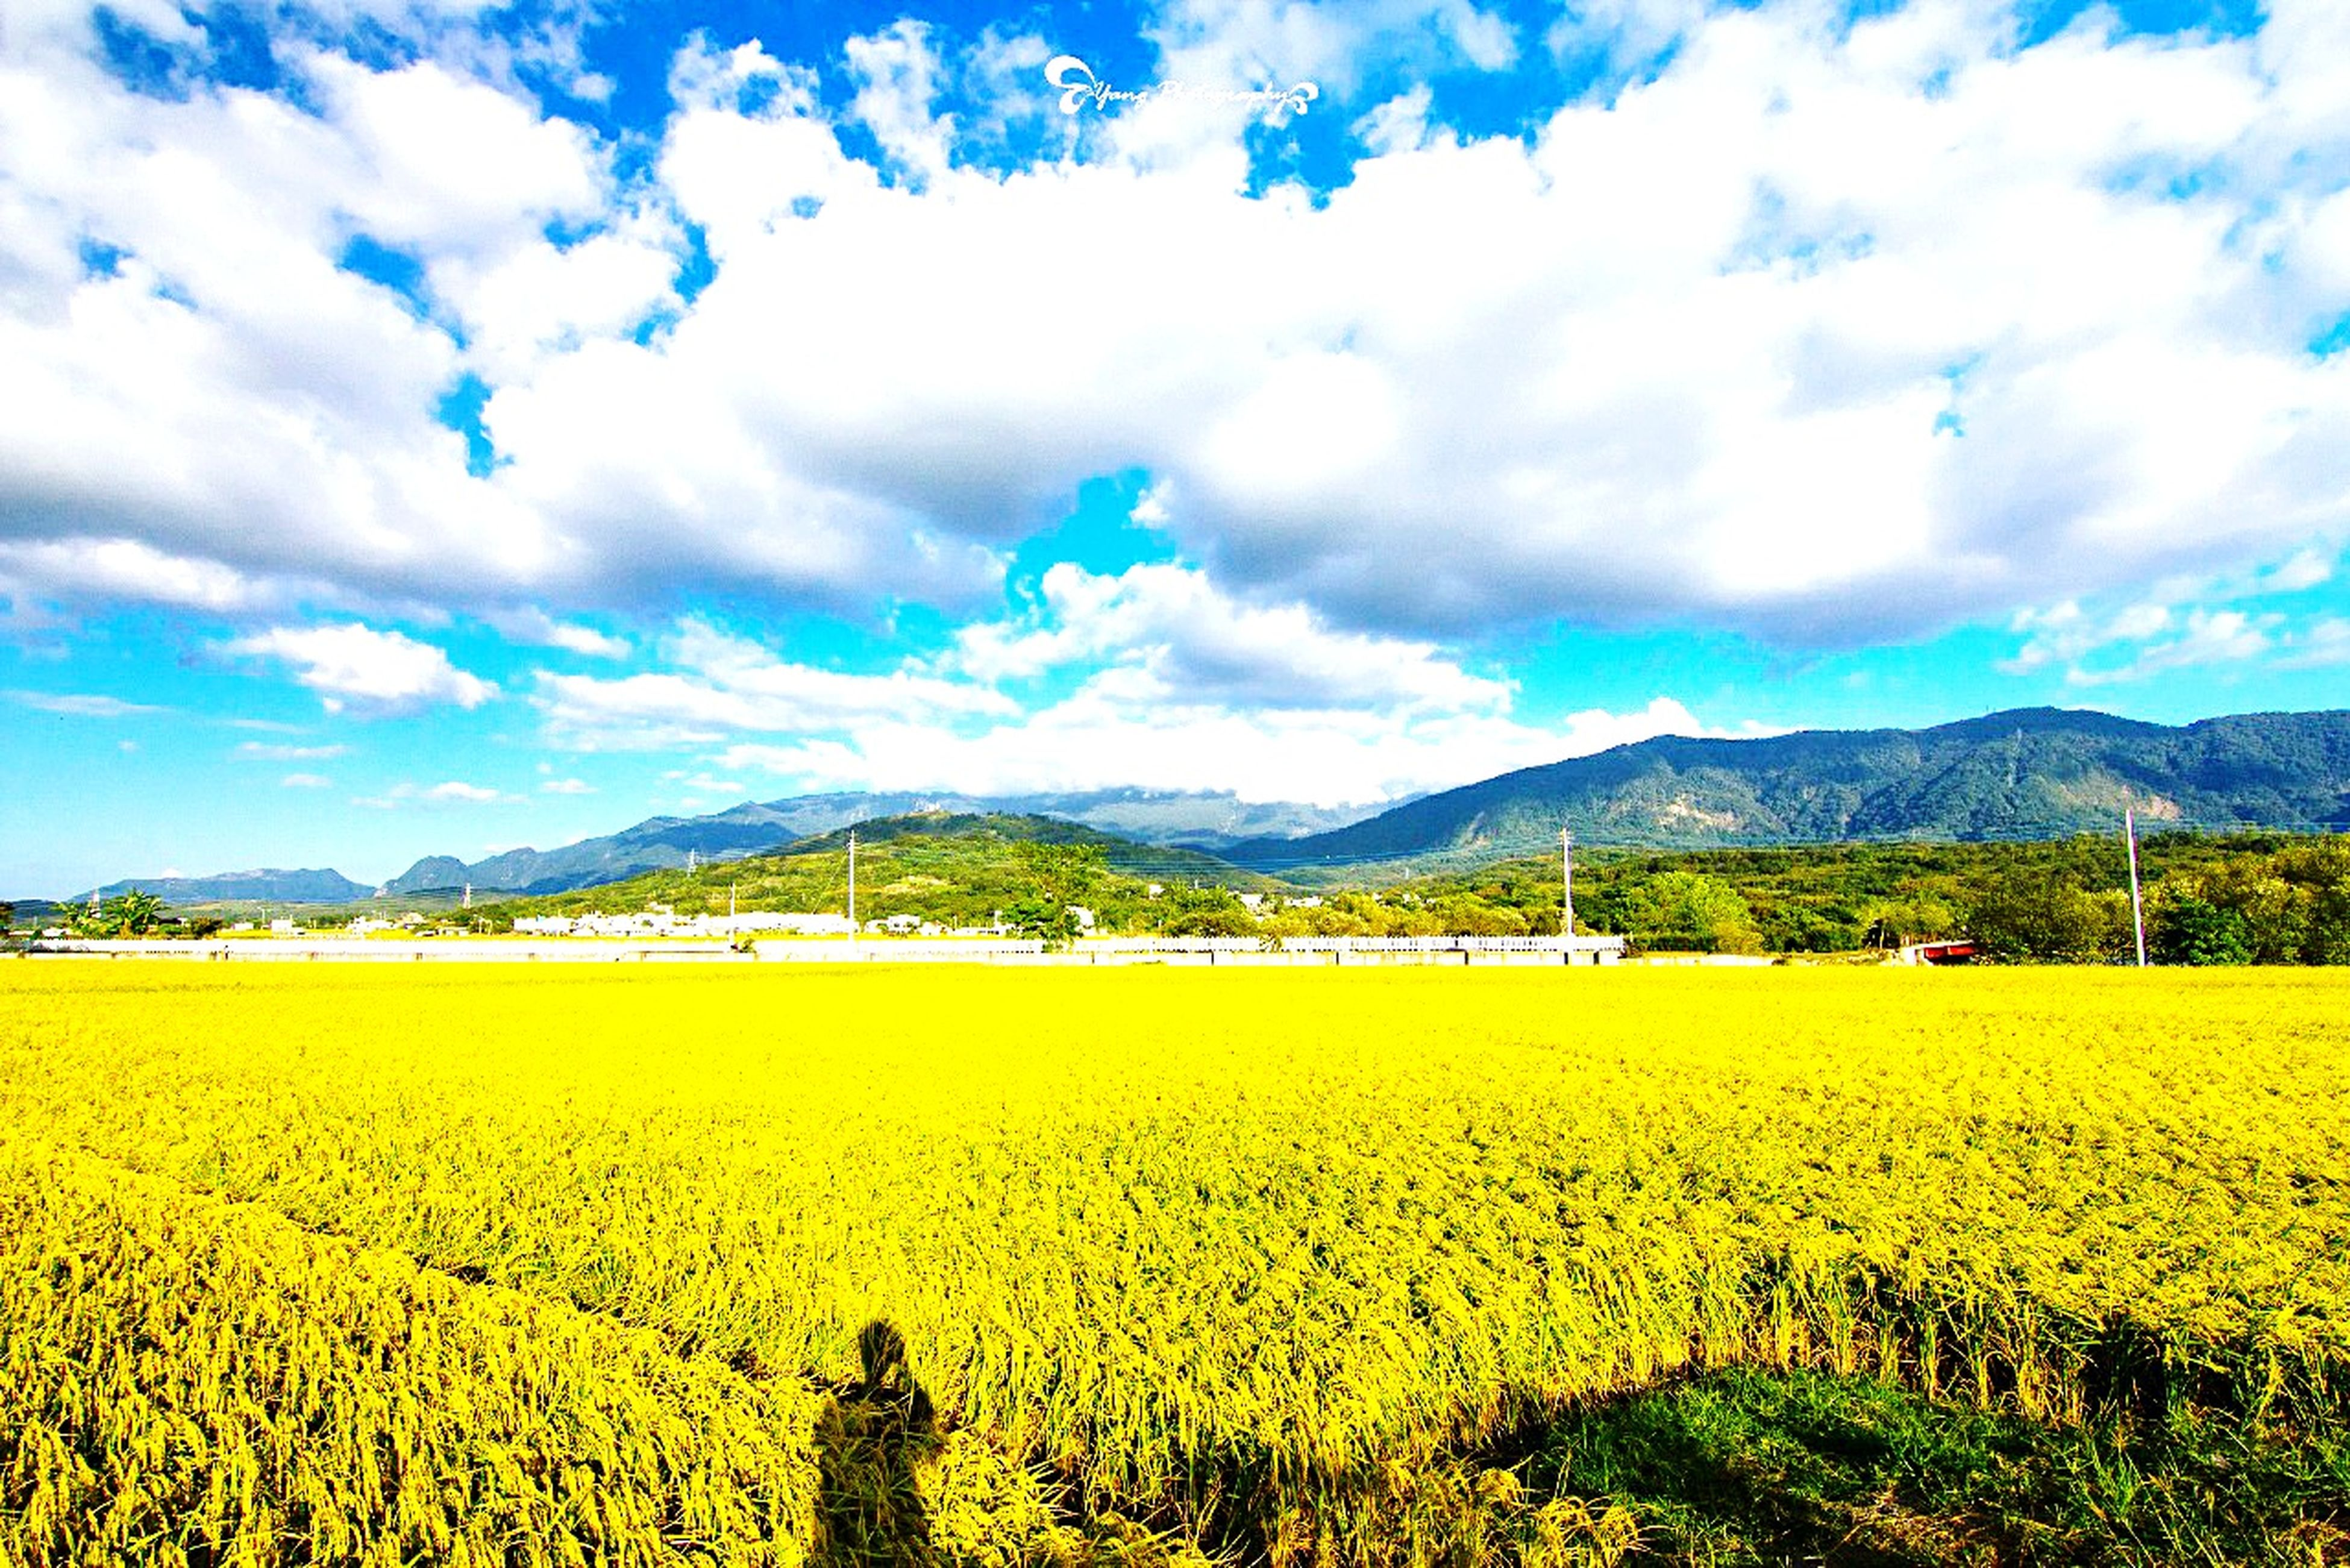 mountain, sky, landscape, tranquil scene, beauty in nature, yellow, scenics, tranquility, mountain range, cloud - sky, flower, field, cloud, nature, rural scene, growth, agriculture, cloudy, blue, idyllic